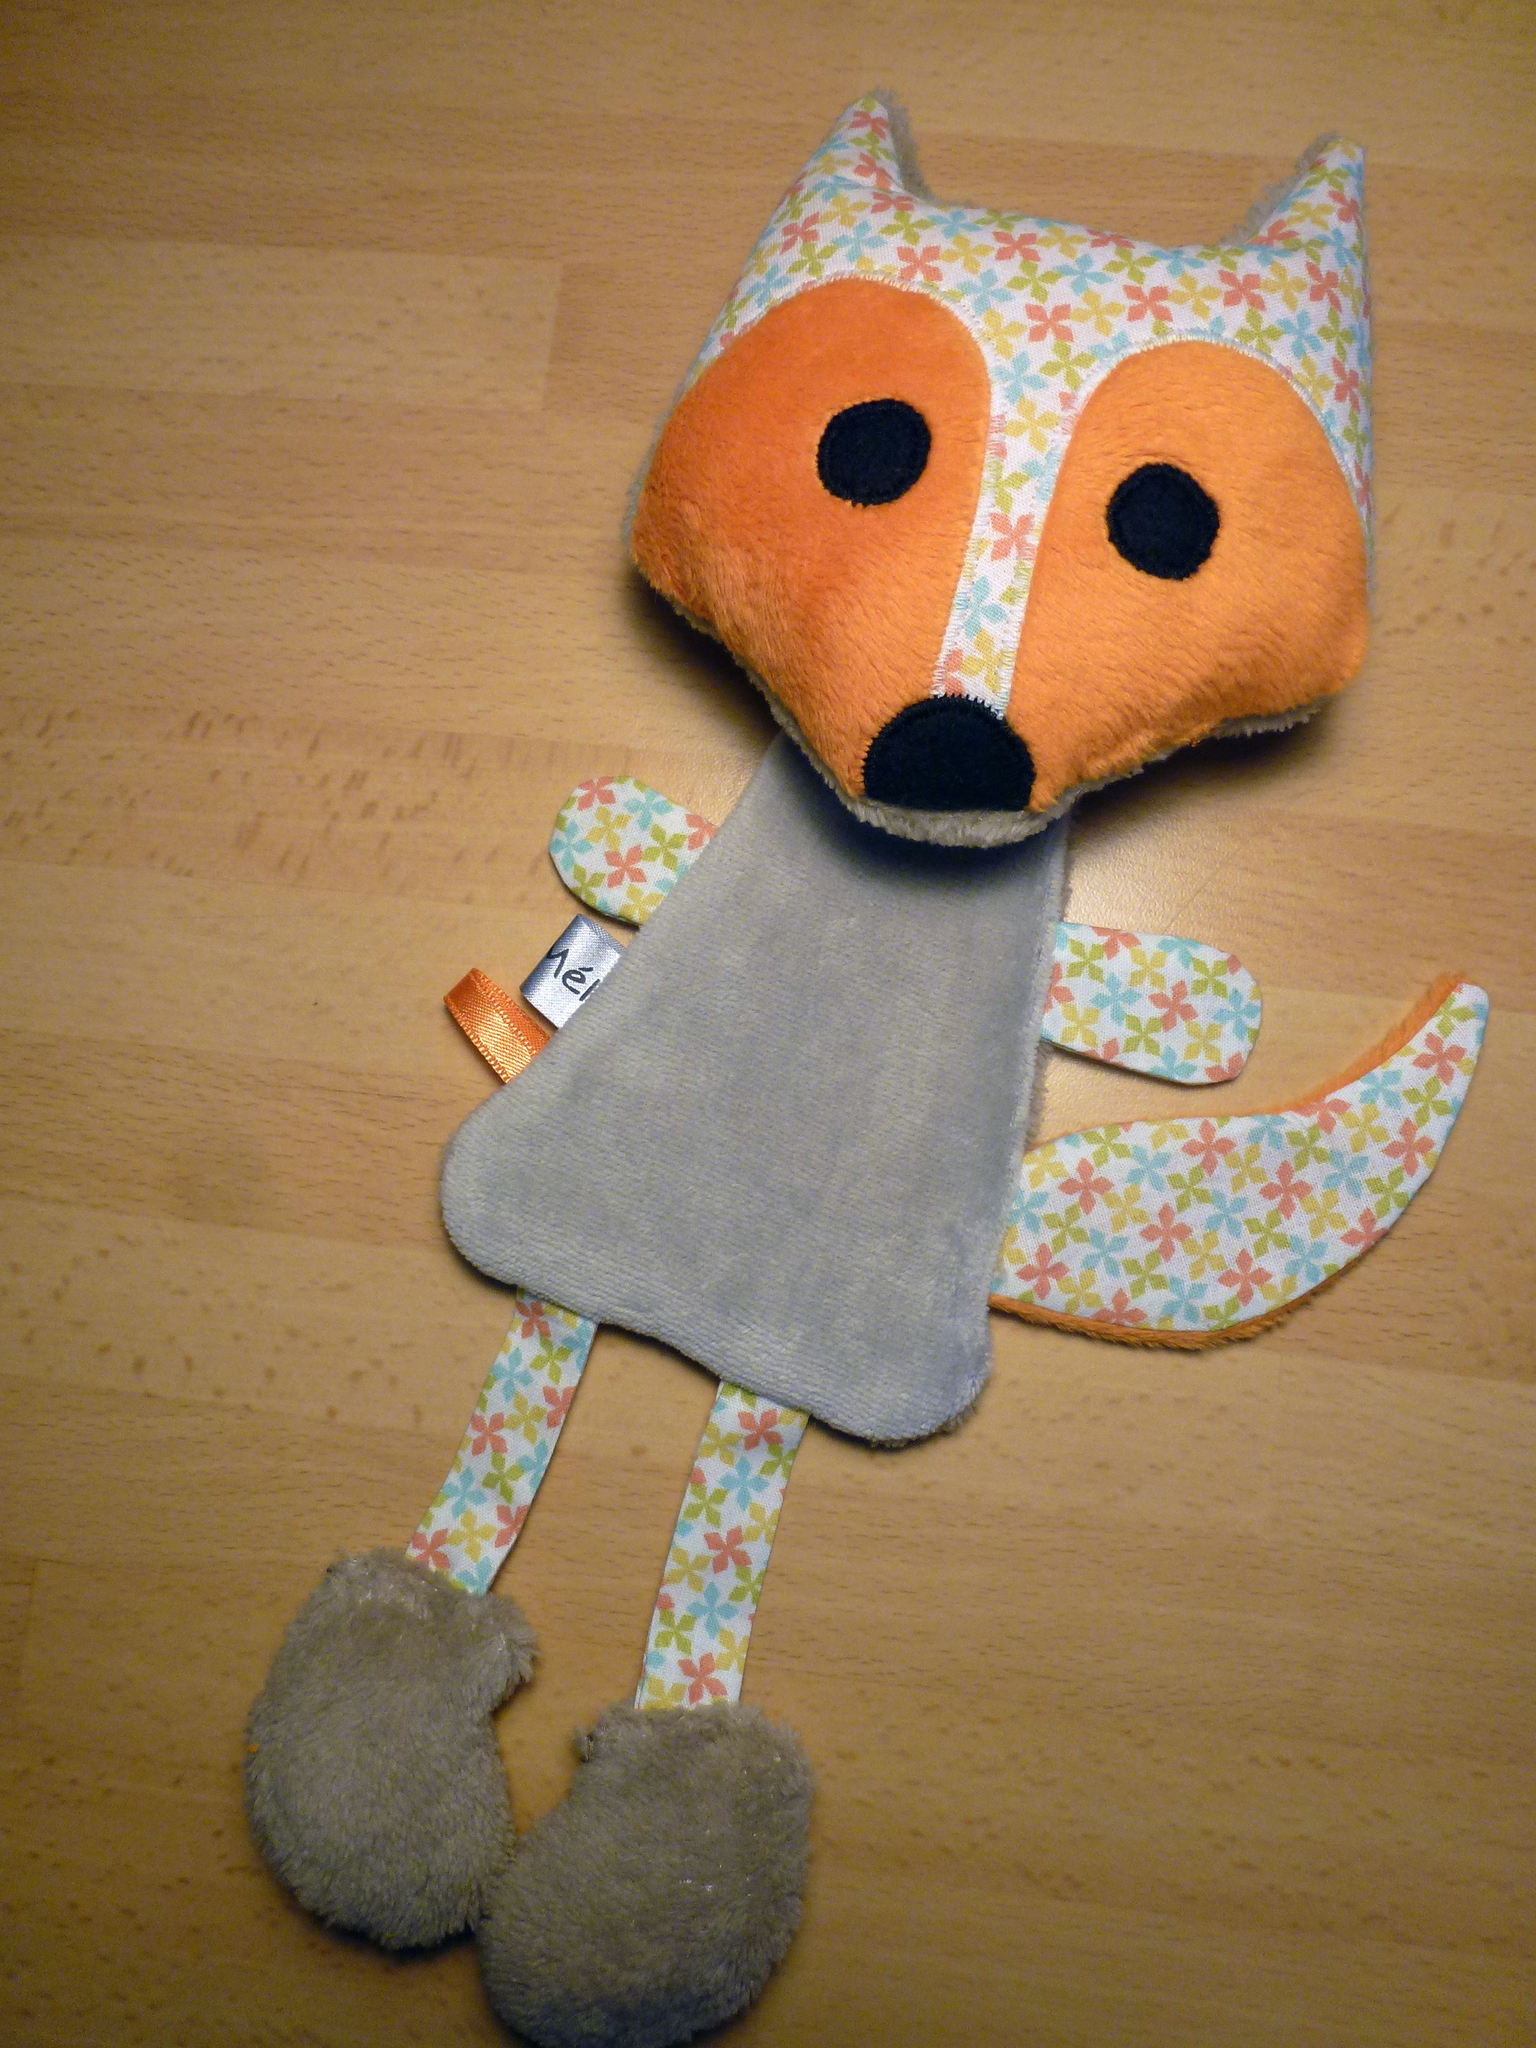 doudou_plat_renard_orange_marron_blanc__1_